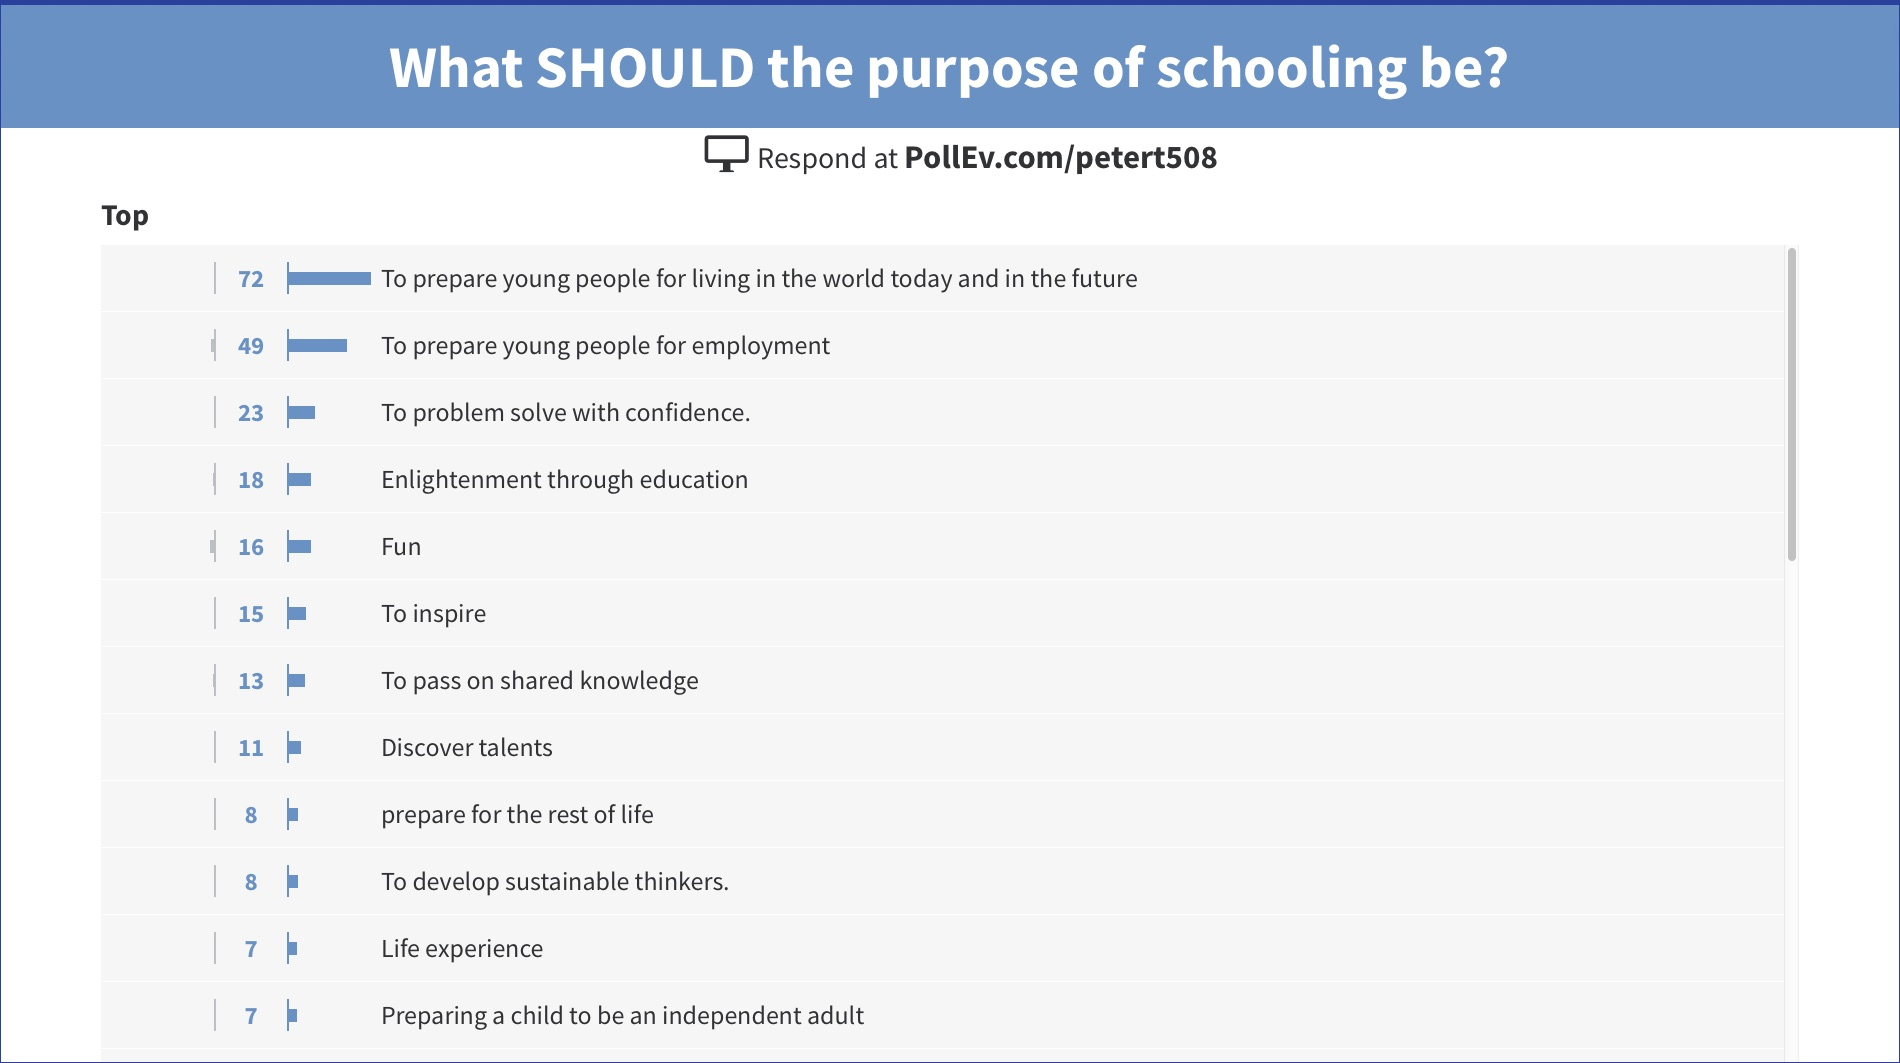 Chart showing responses to the question 'What should the purpose of schooling be?